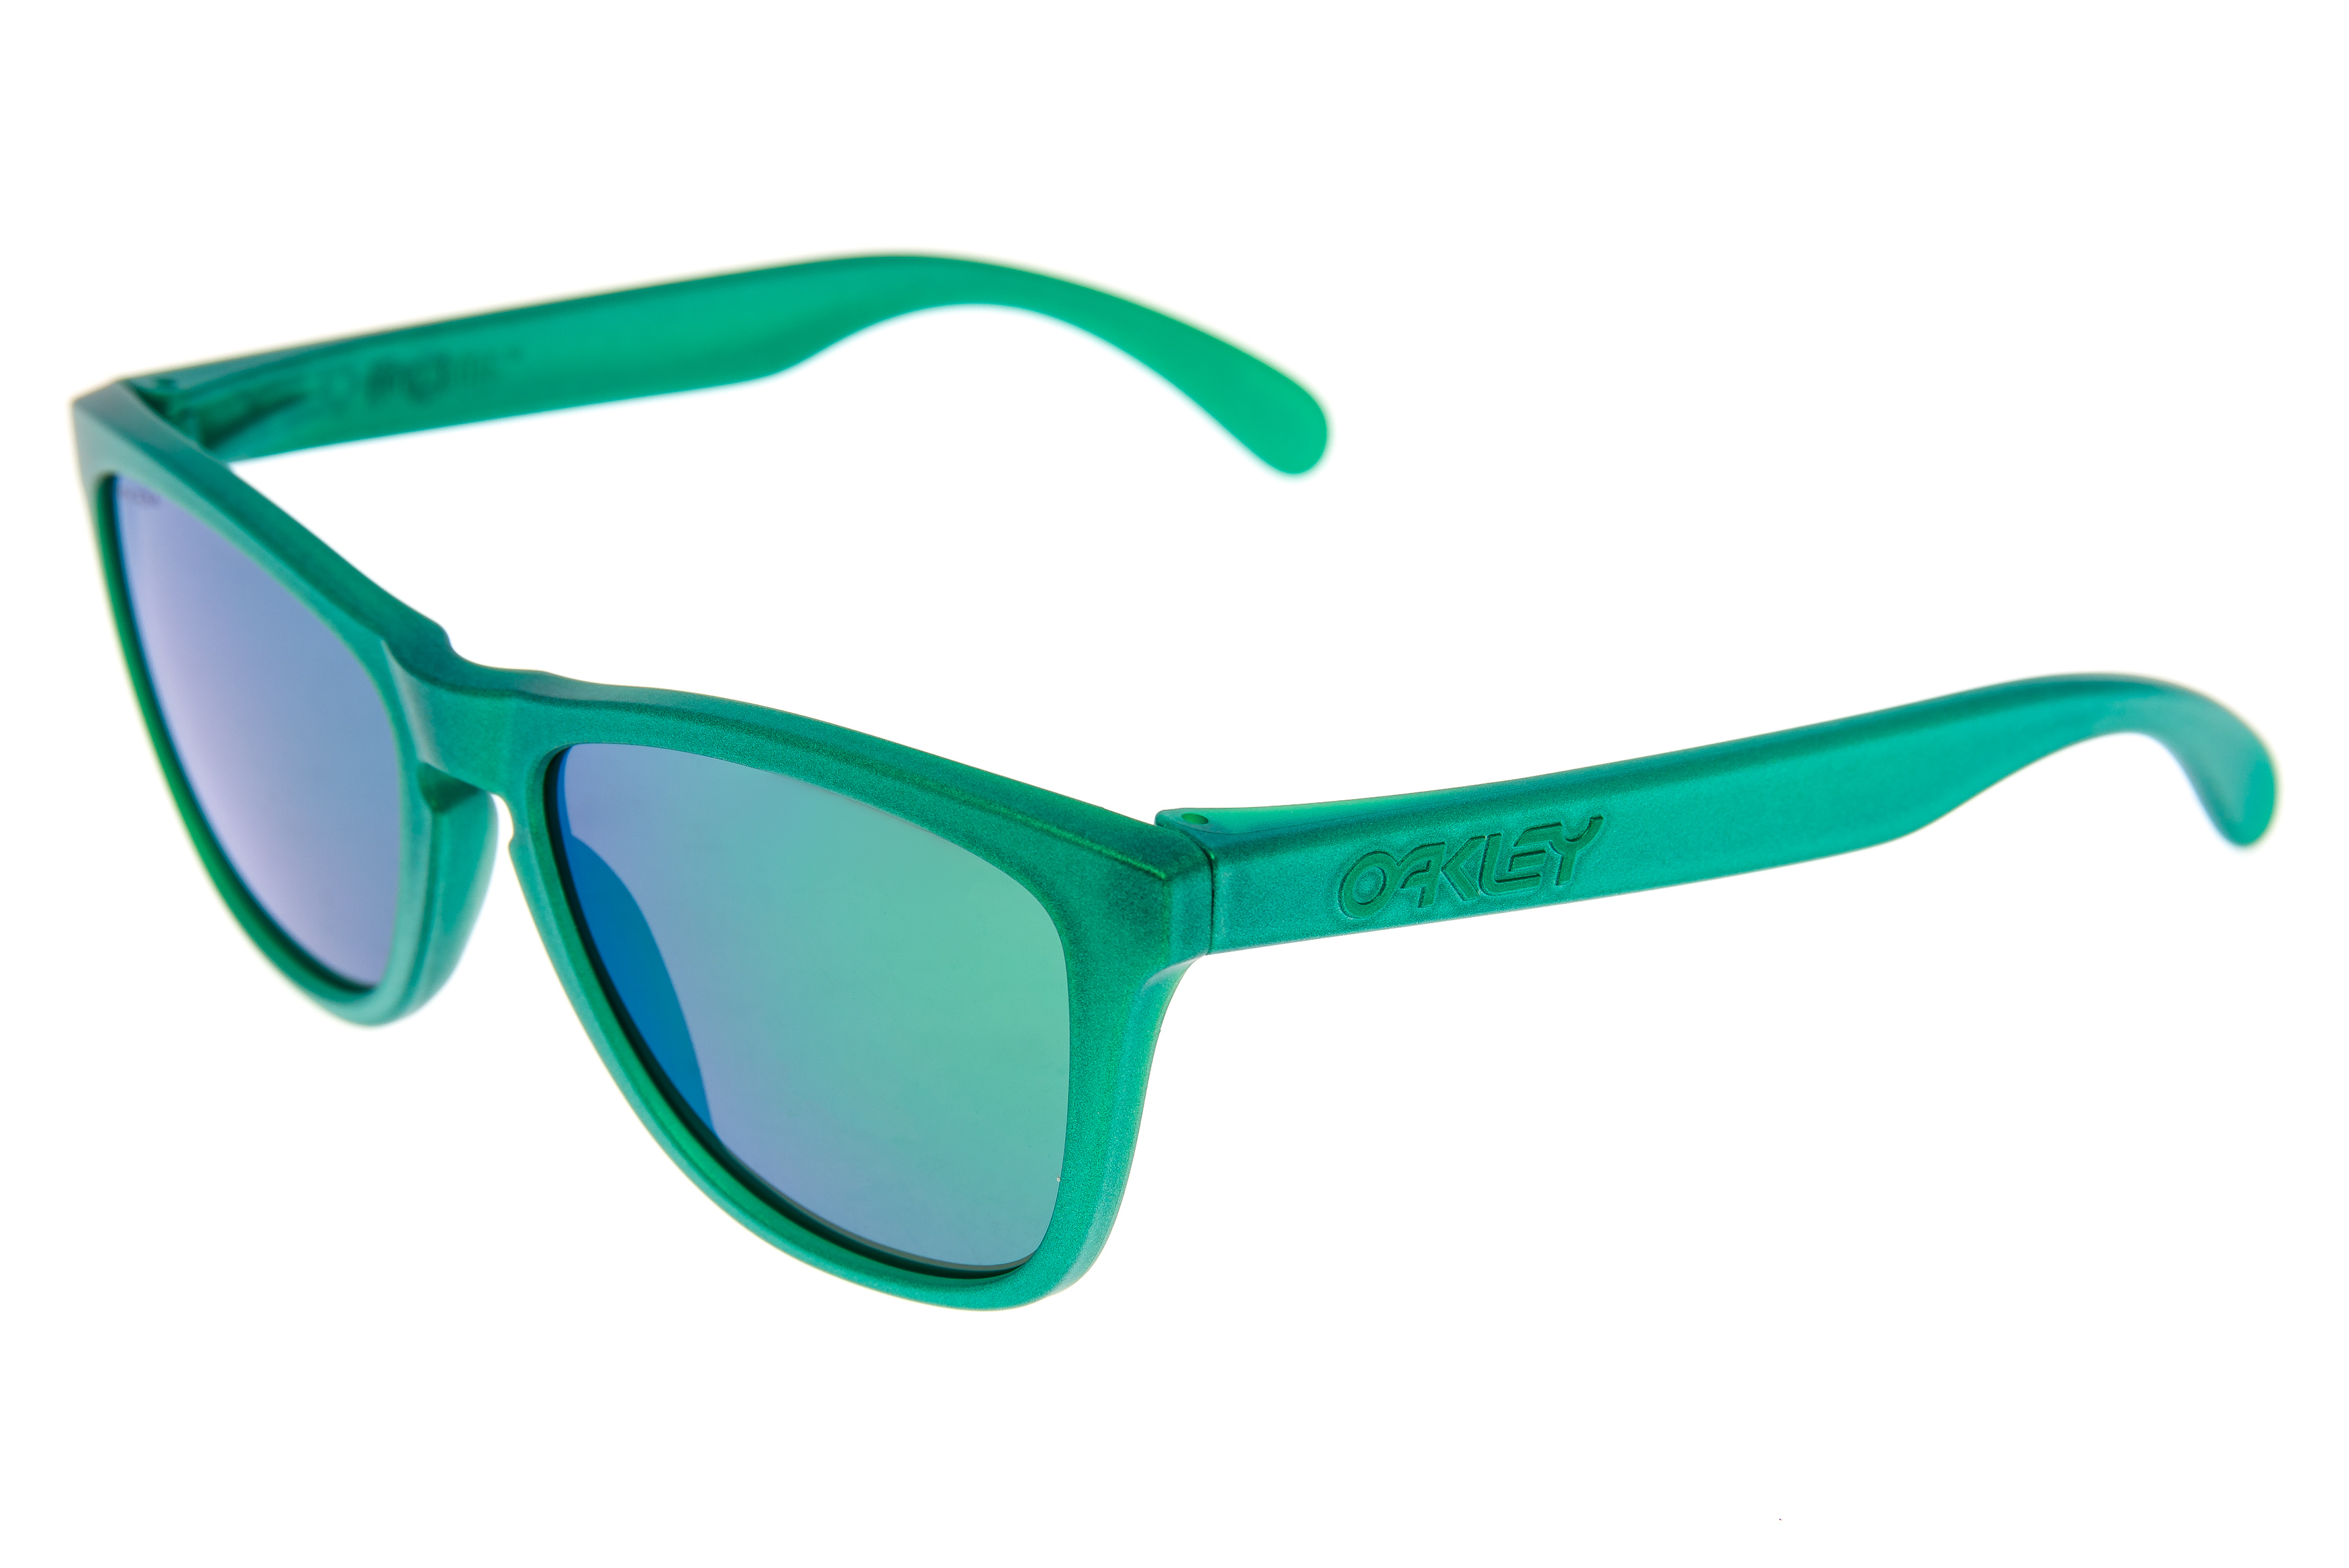 964936d063 Details about Oakley Frogskins Sunglasses Matte Green Frame Prizm Polarized  Lens - Excellent